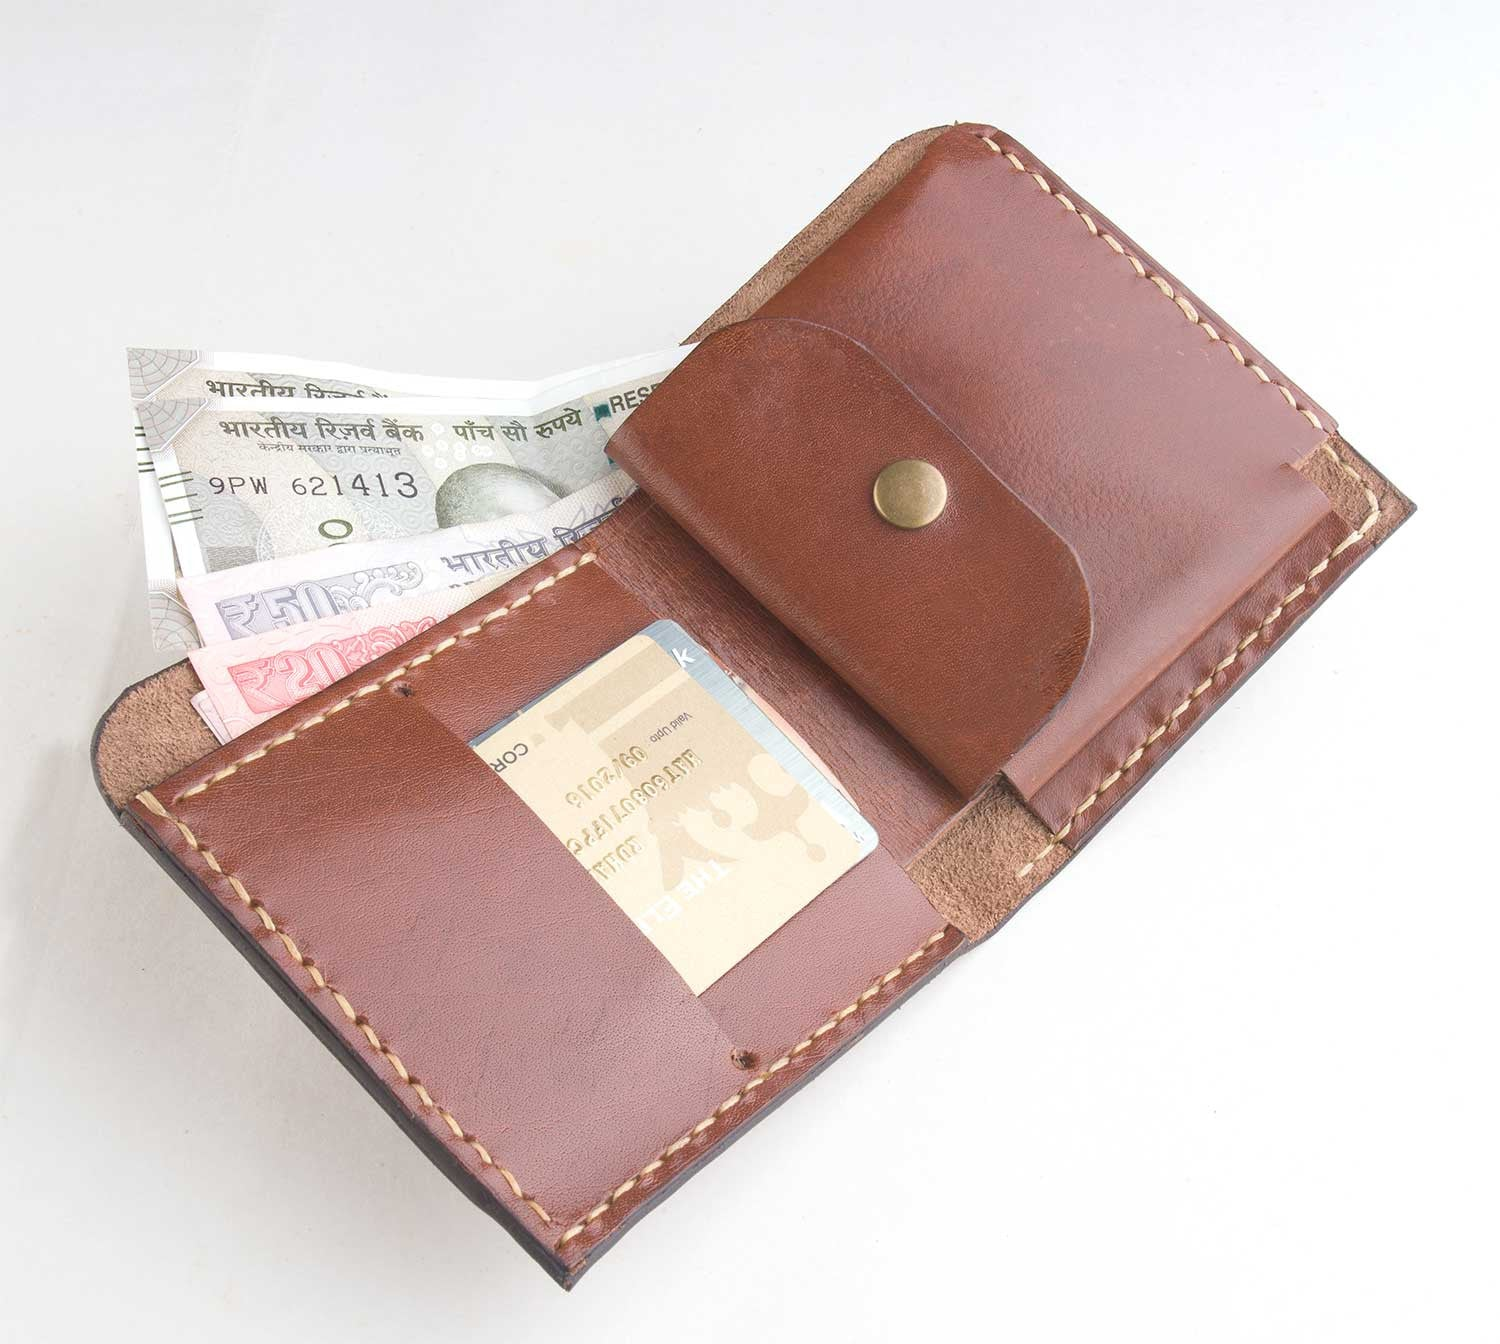 Mammoth Men's wallet - Two Horns